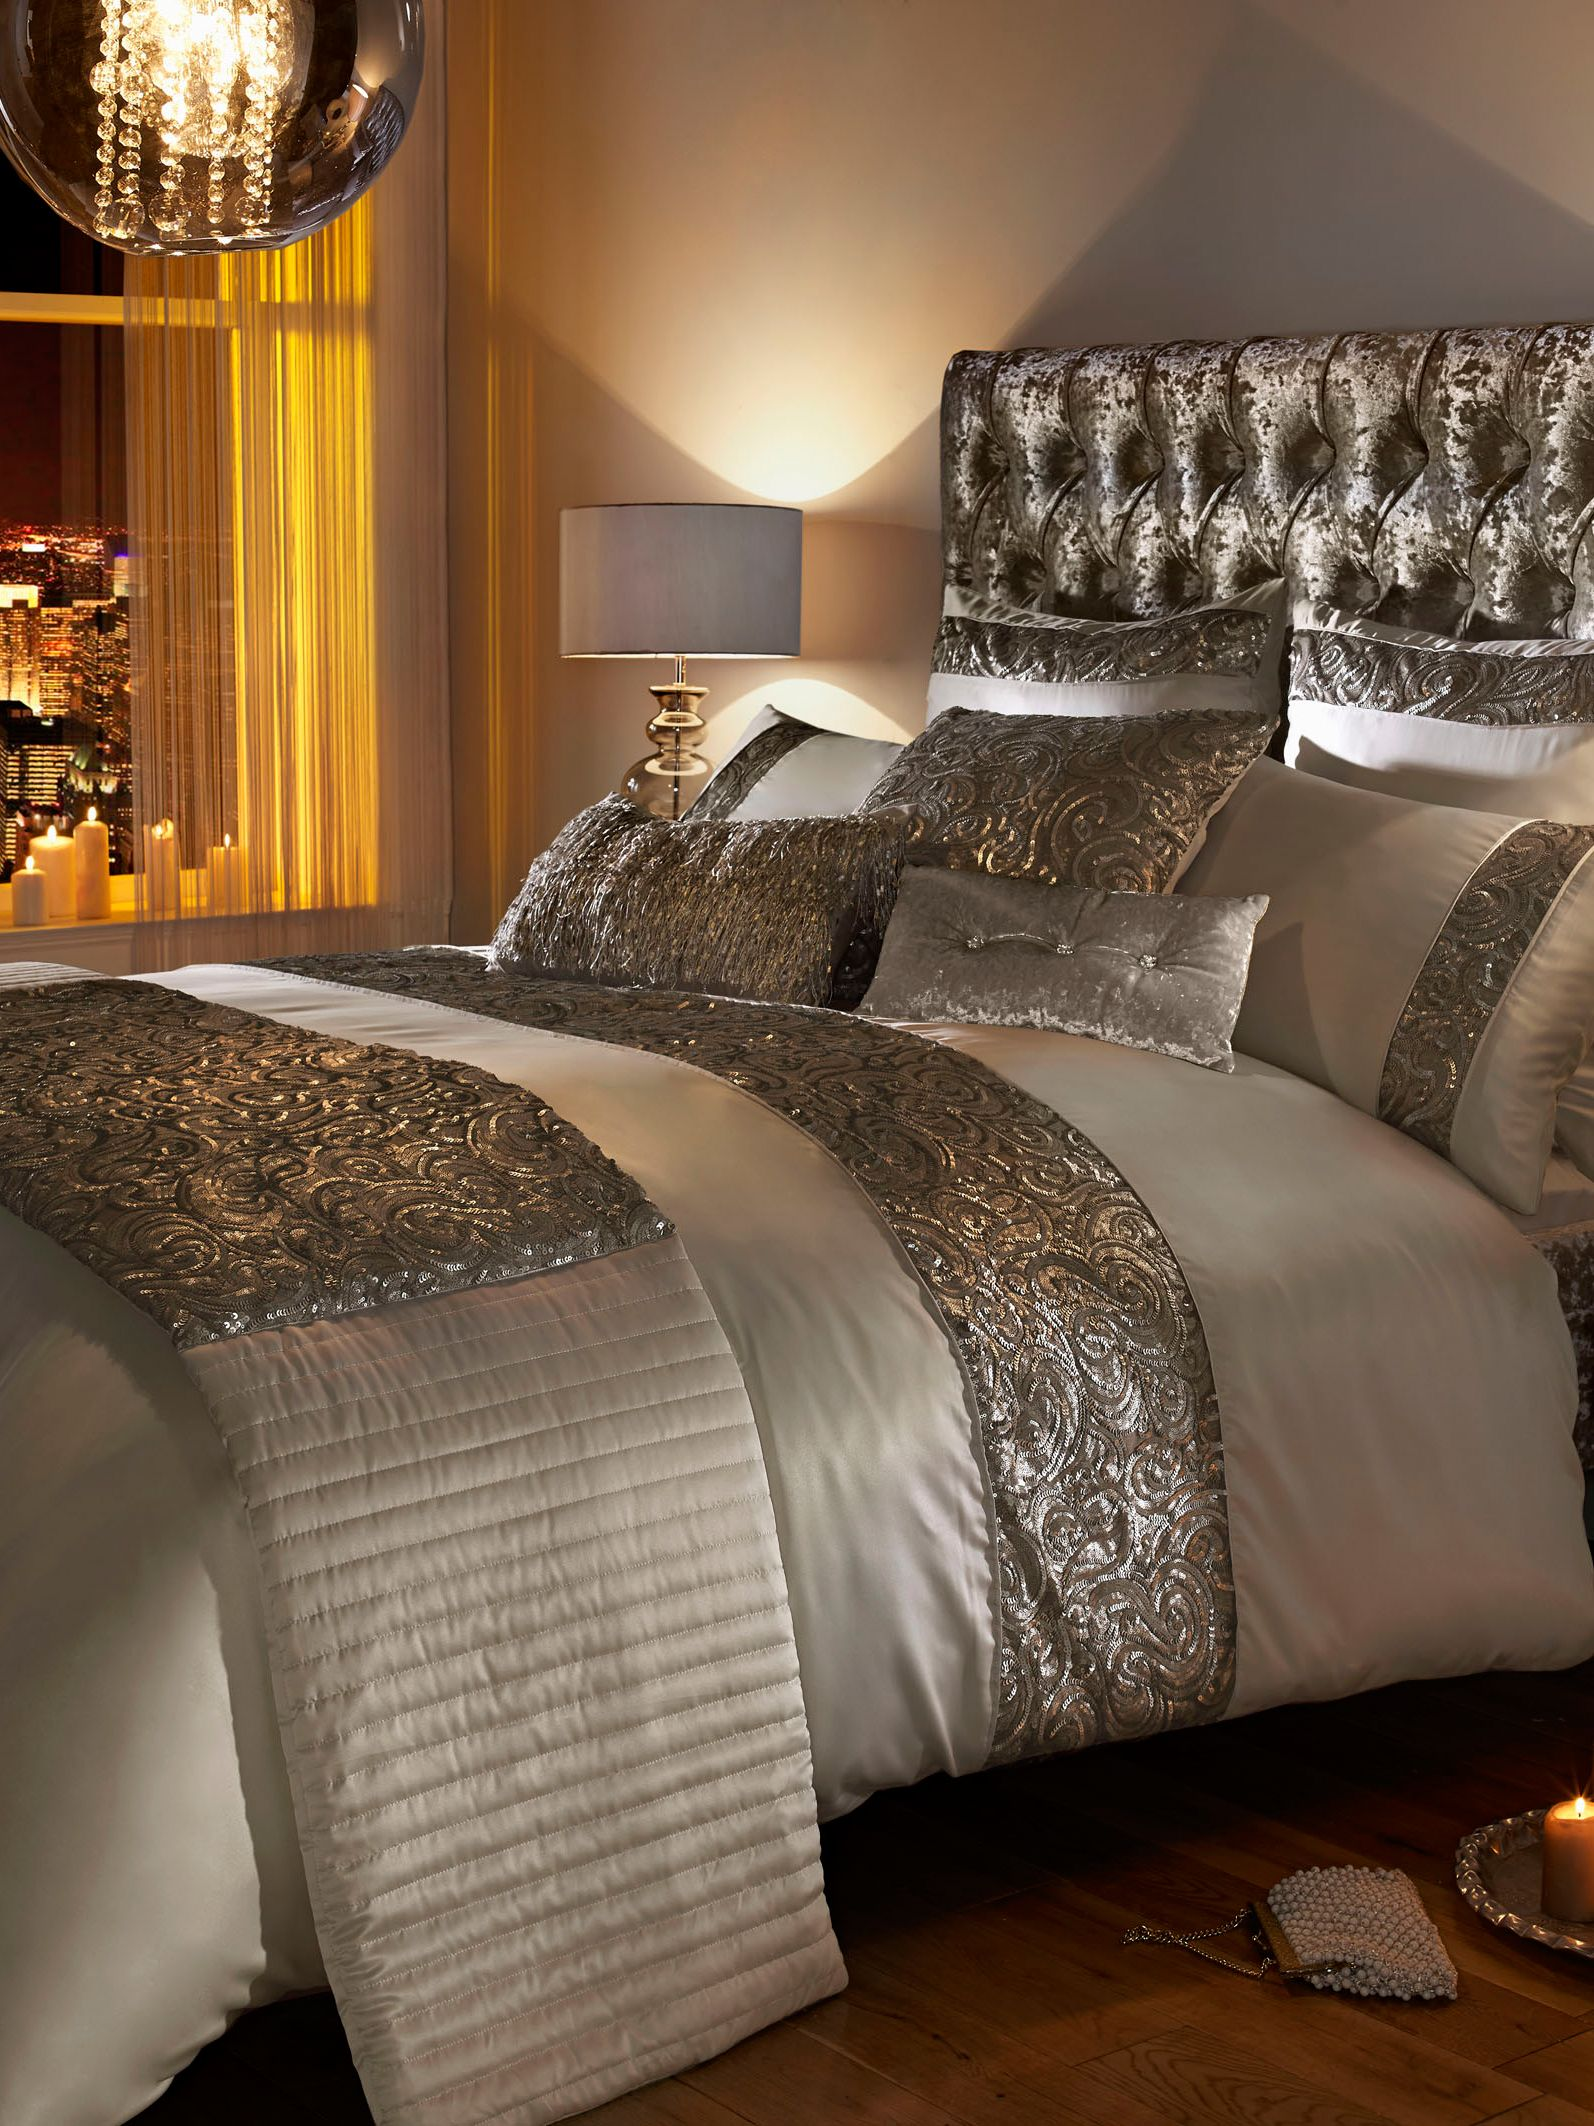 Noralla bed linen